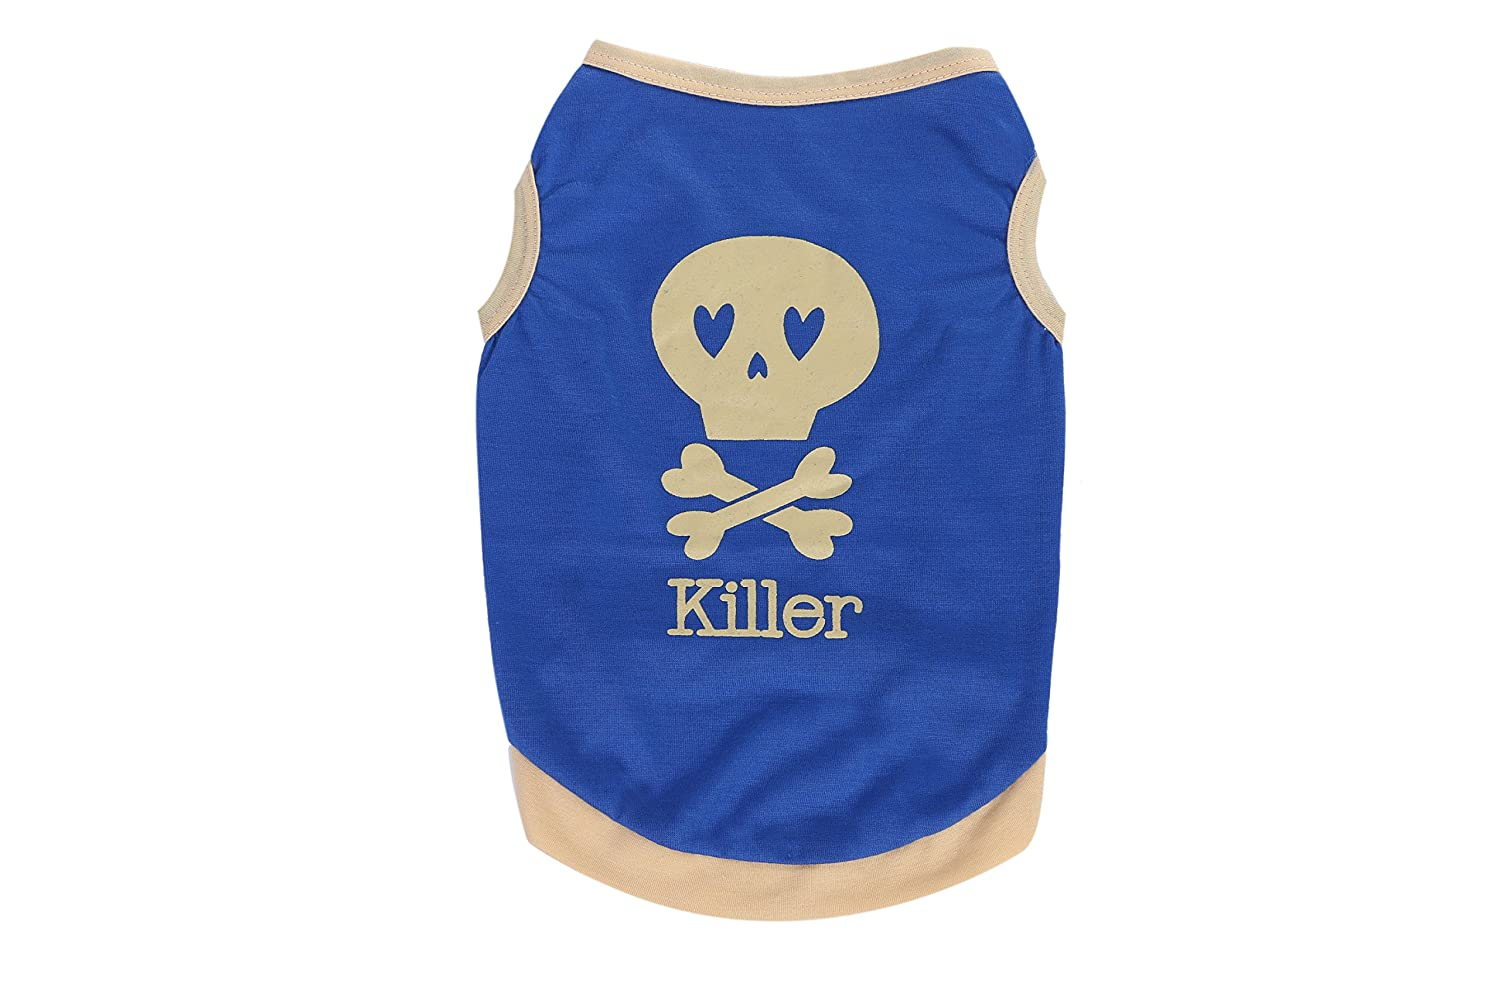 bluee+Cream Skull L bluee+Cream Skull L Skull Print Vest T-Shirt for Small Dogs and Cats Summer Dog Appare (L, bluee+Cream Skull)